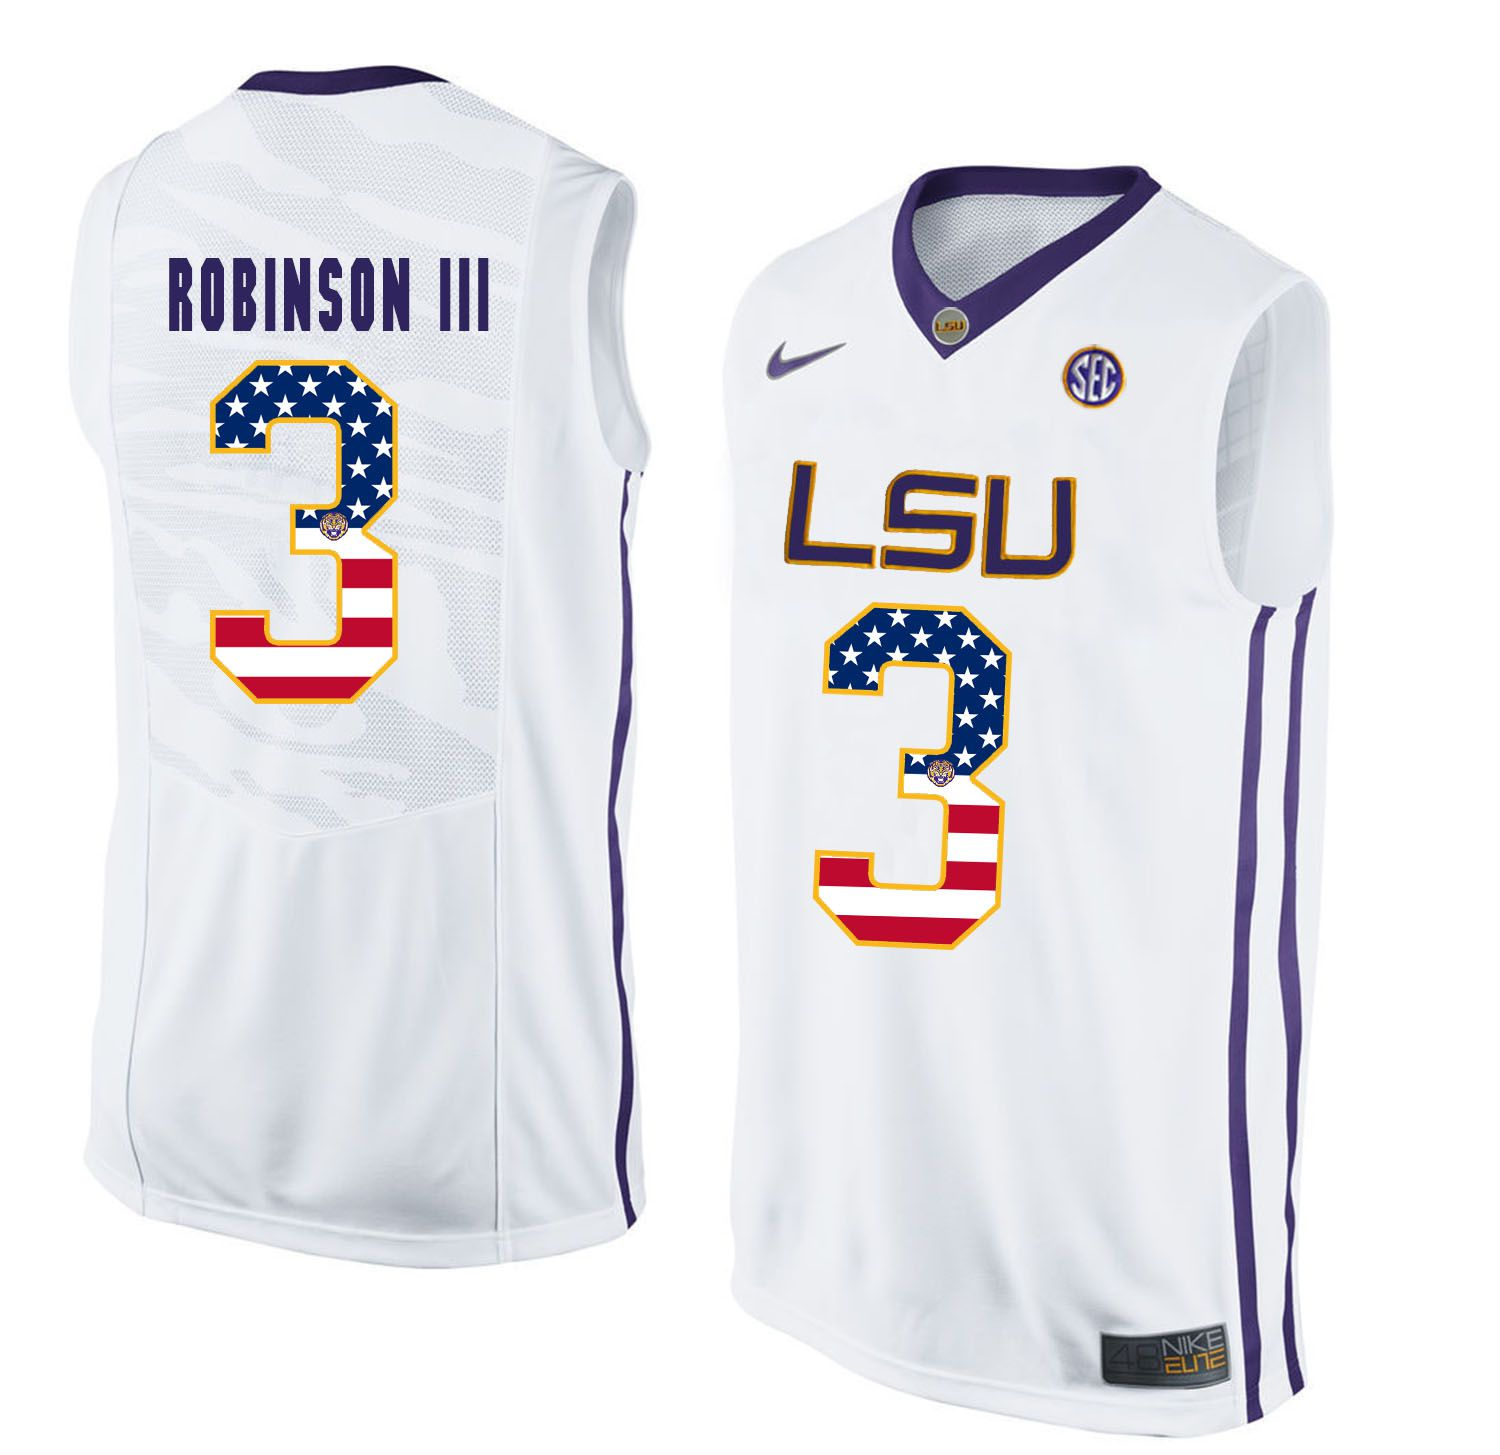 Men LSU Tigers 3 Robinson iii White Flag Customized NCAA Jerseys